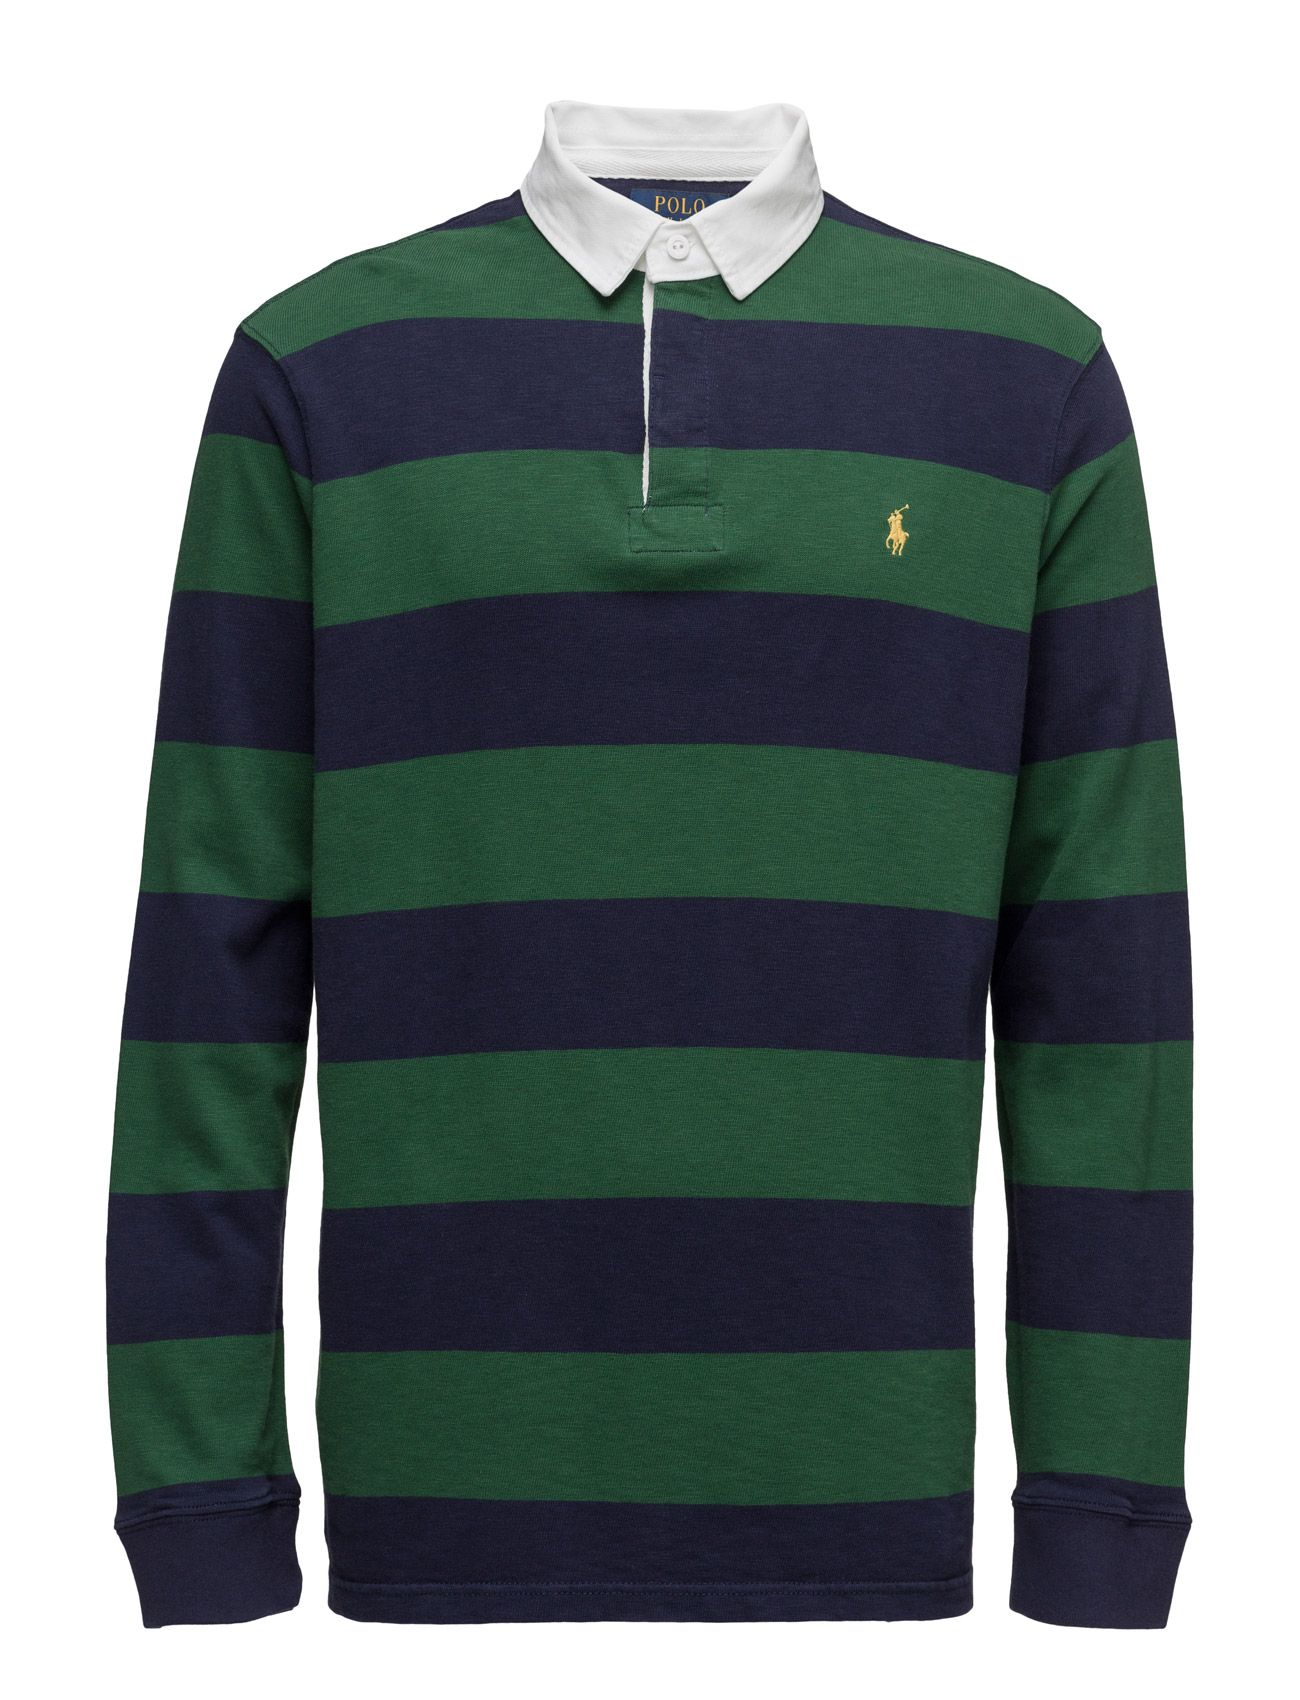 40ae980bc6b polo ralph lauren the iconic rugby shirt french navy new f men tops shirts  long-sleeved